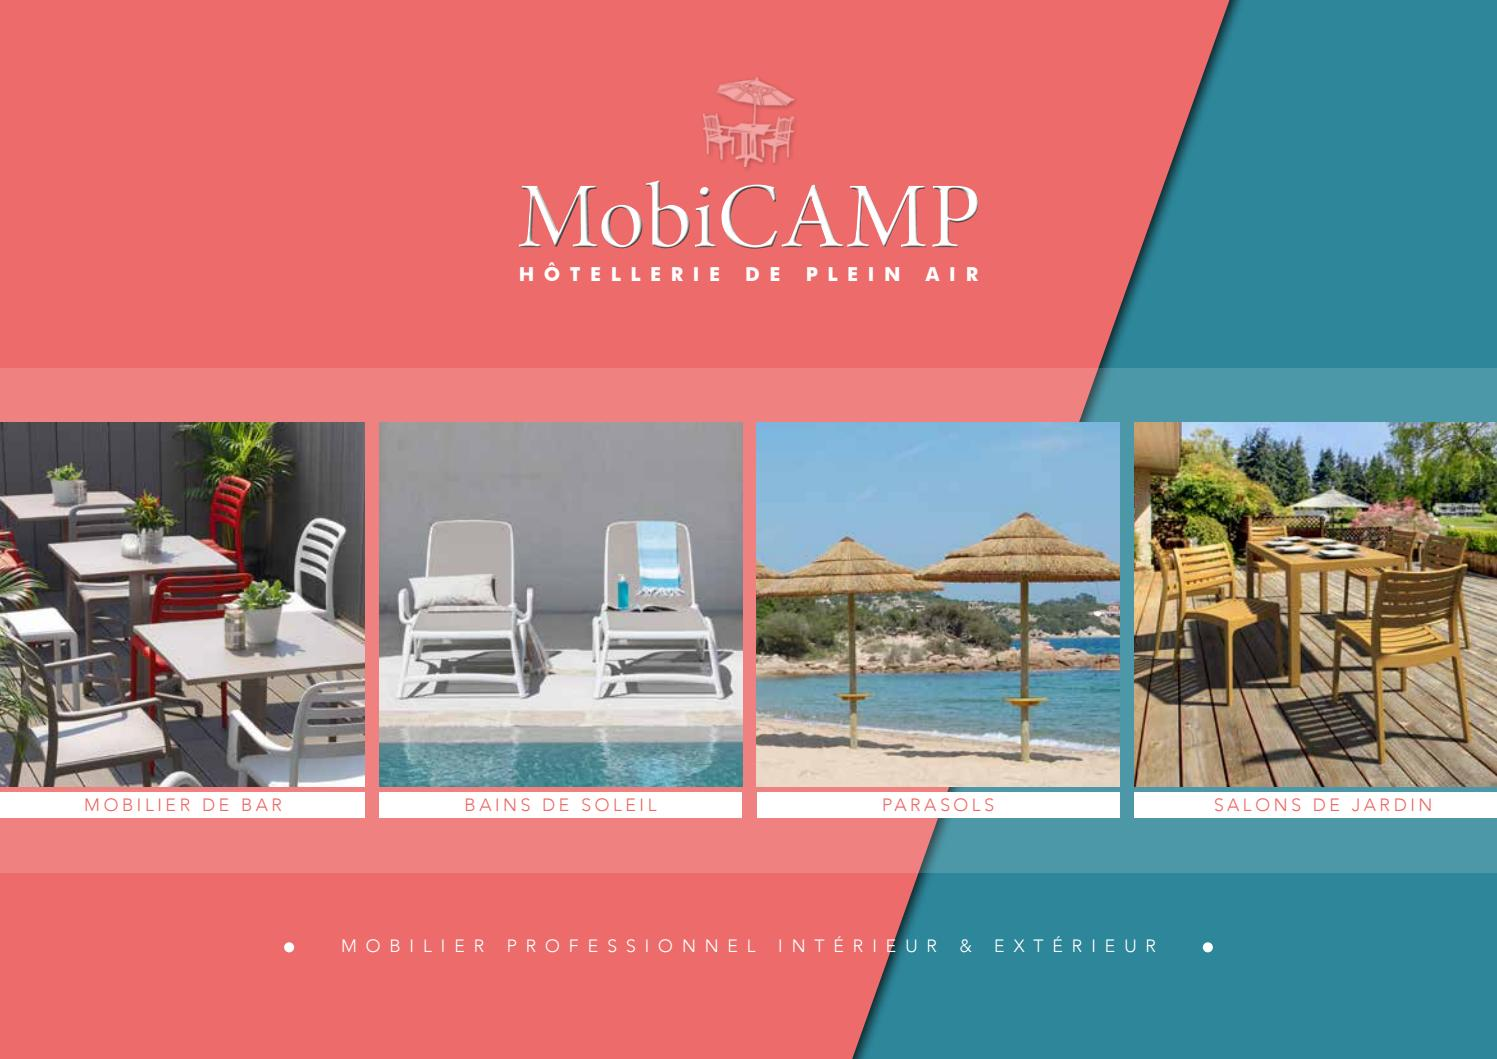 MobiCAMP - catalogue 2018/2019 by jhcommunication - issuu